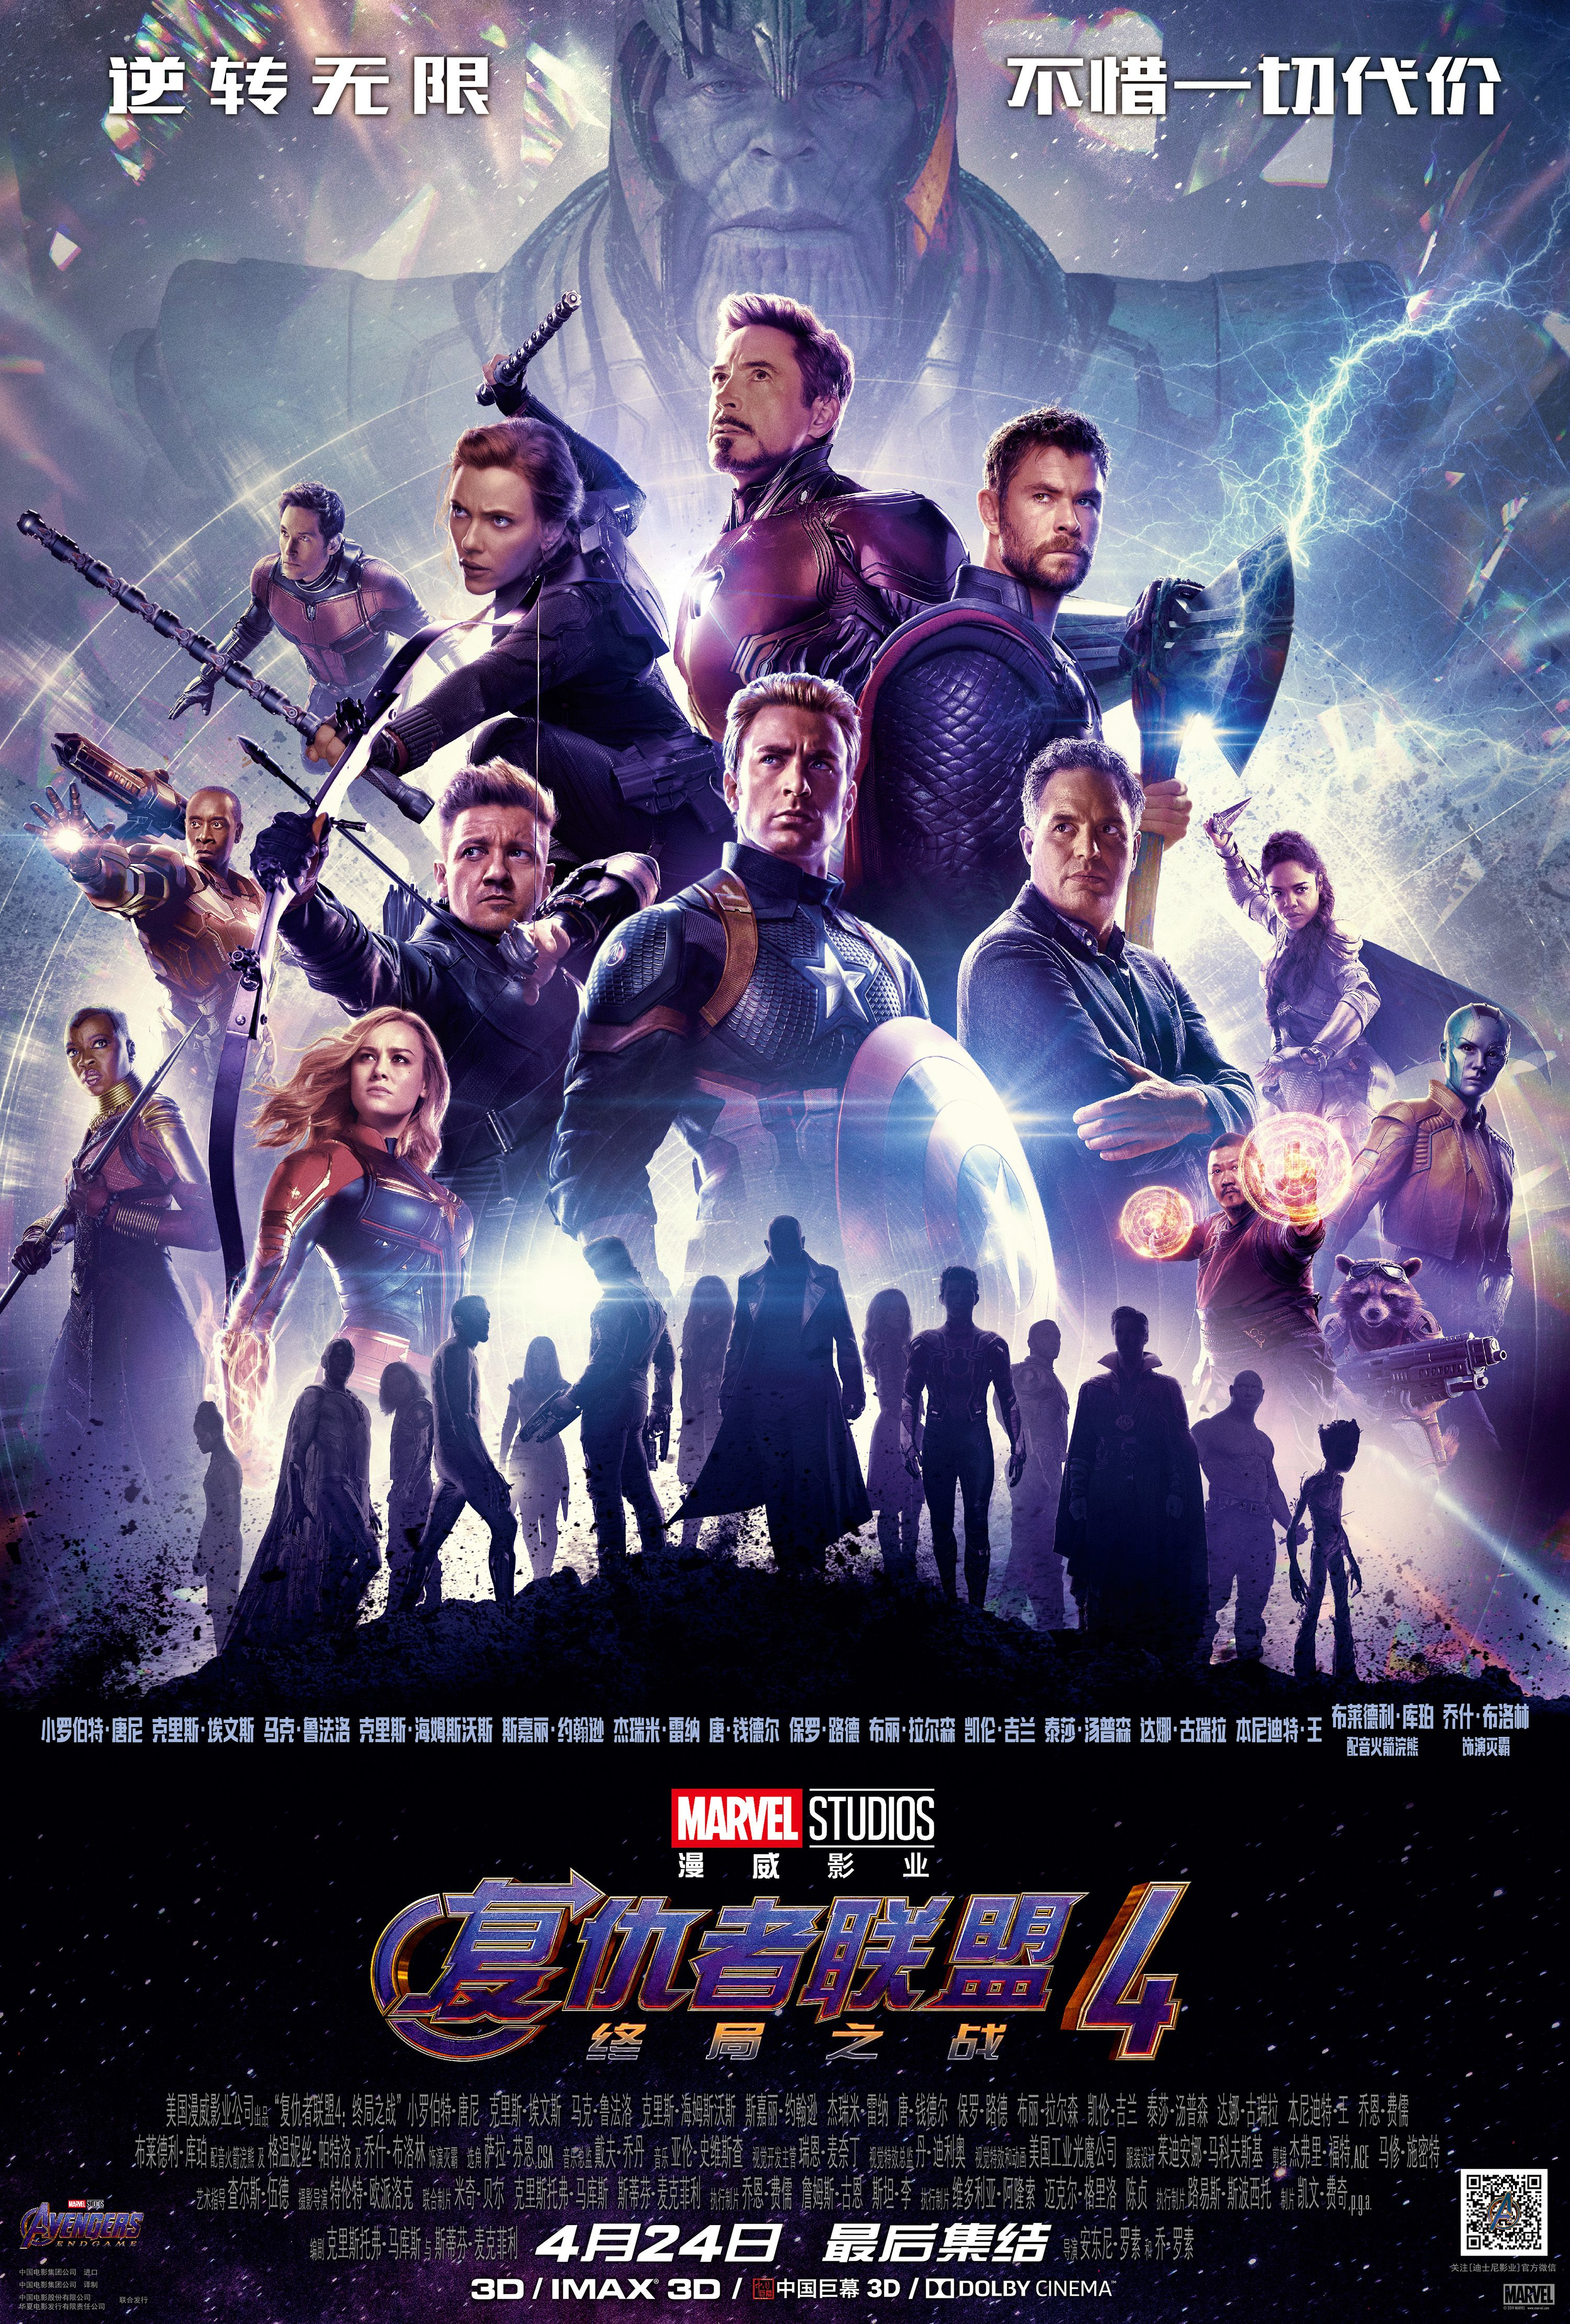 Here S Your Look At The New International Posters For Marvel